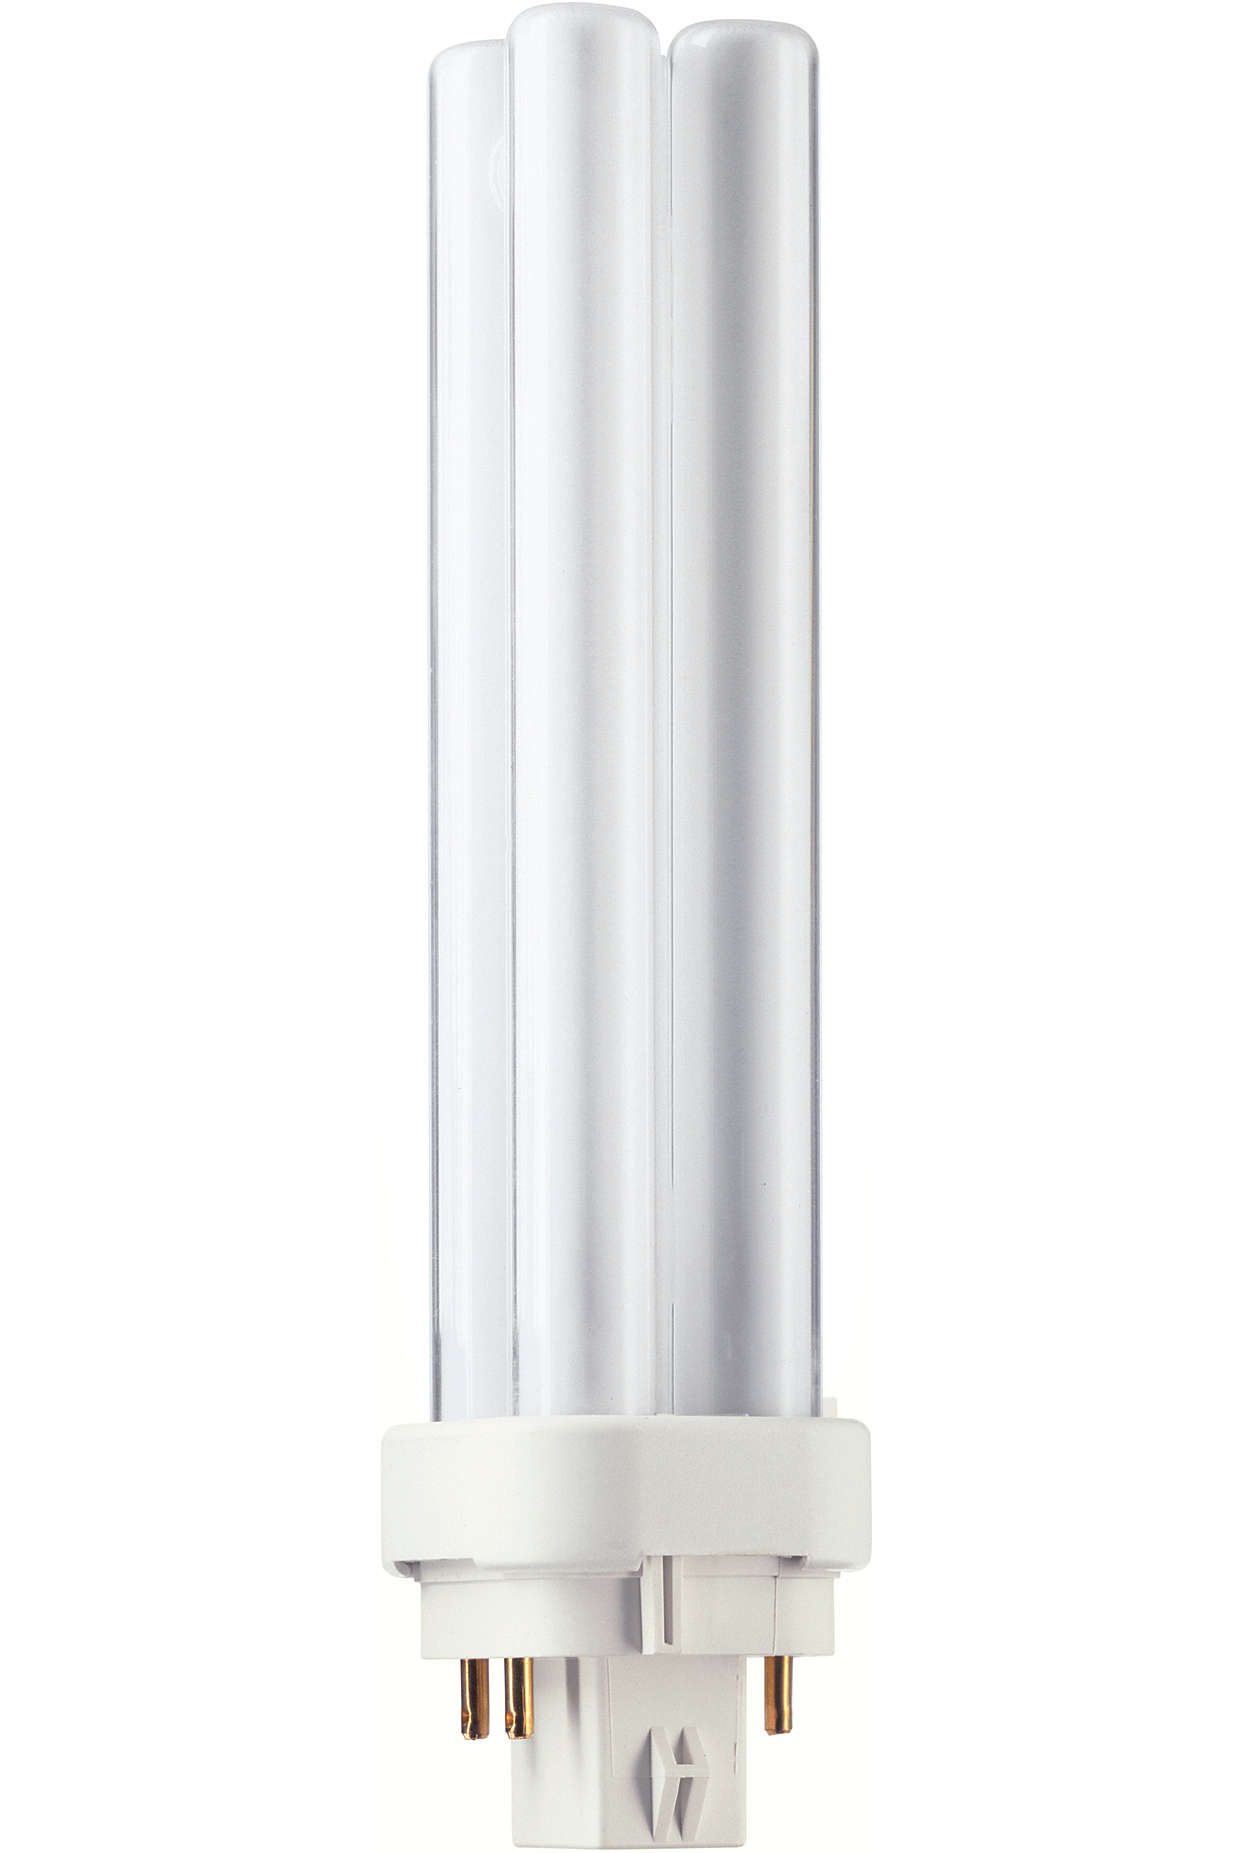 A compact lamp with enhanced performance